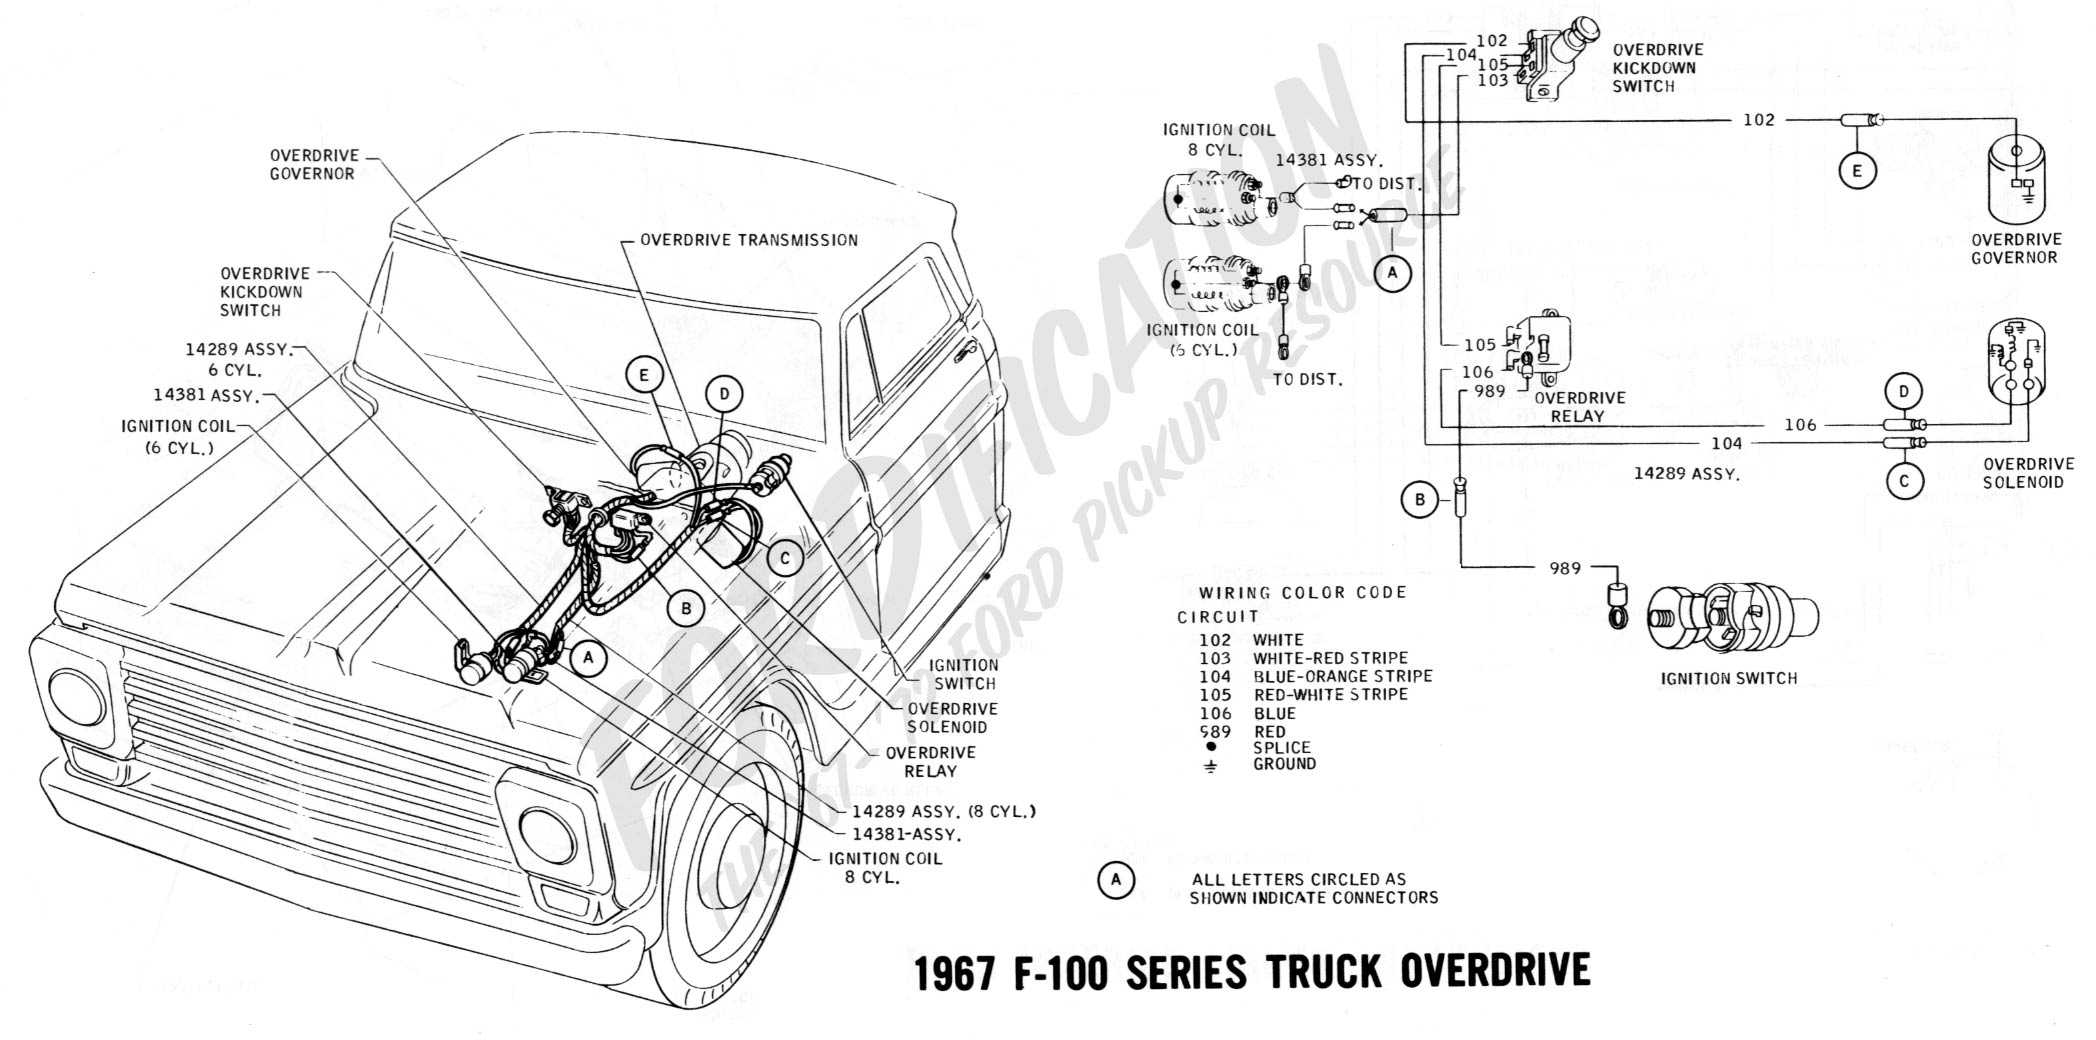 1972 Chevy Truck Fuse Box. Chevy. Wiring Diagram Images